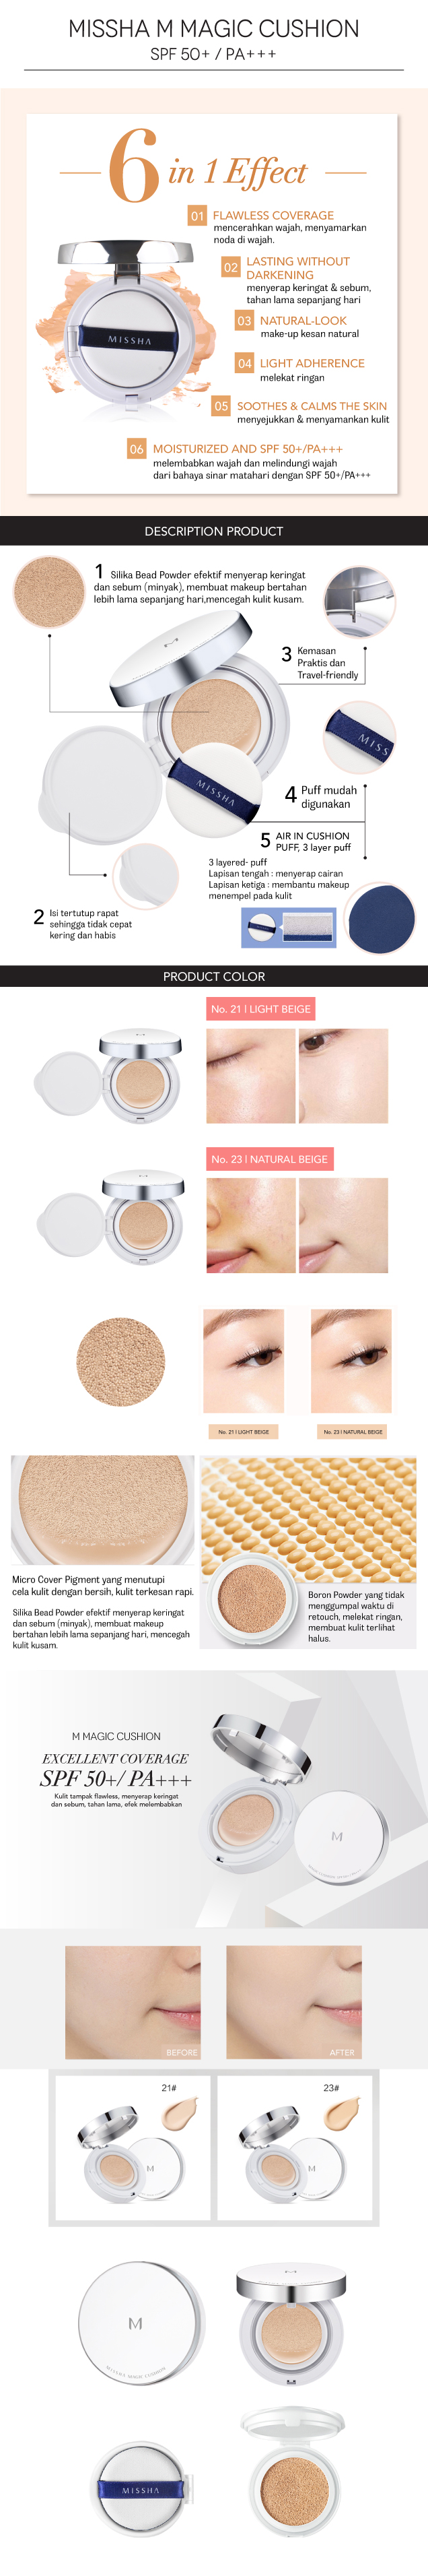 M MAGIC CUSHION MISSHA INDONESIA